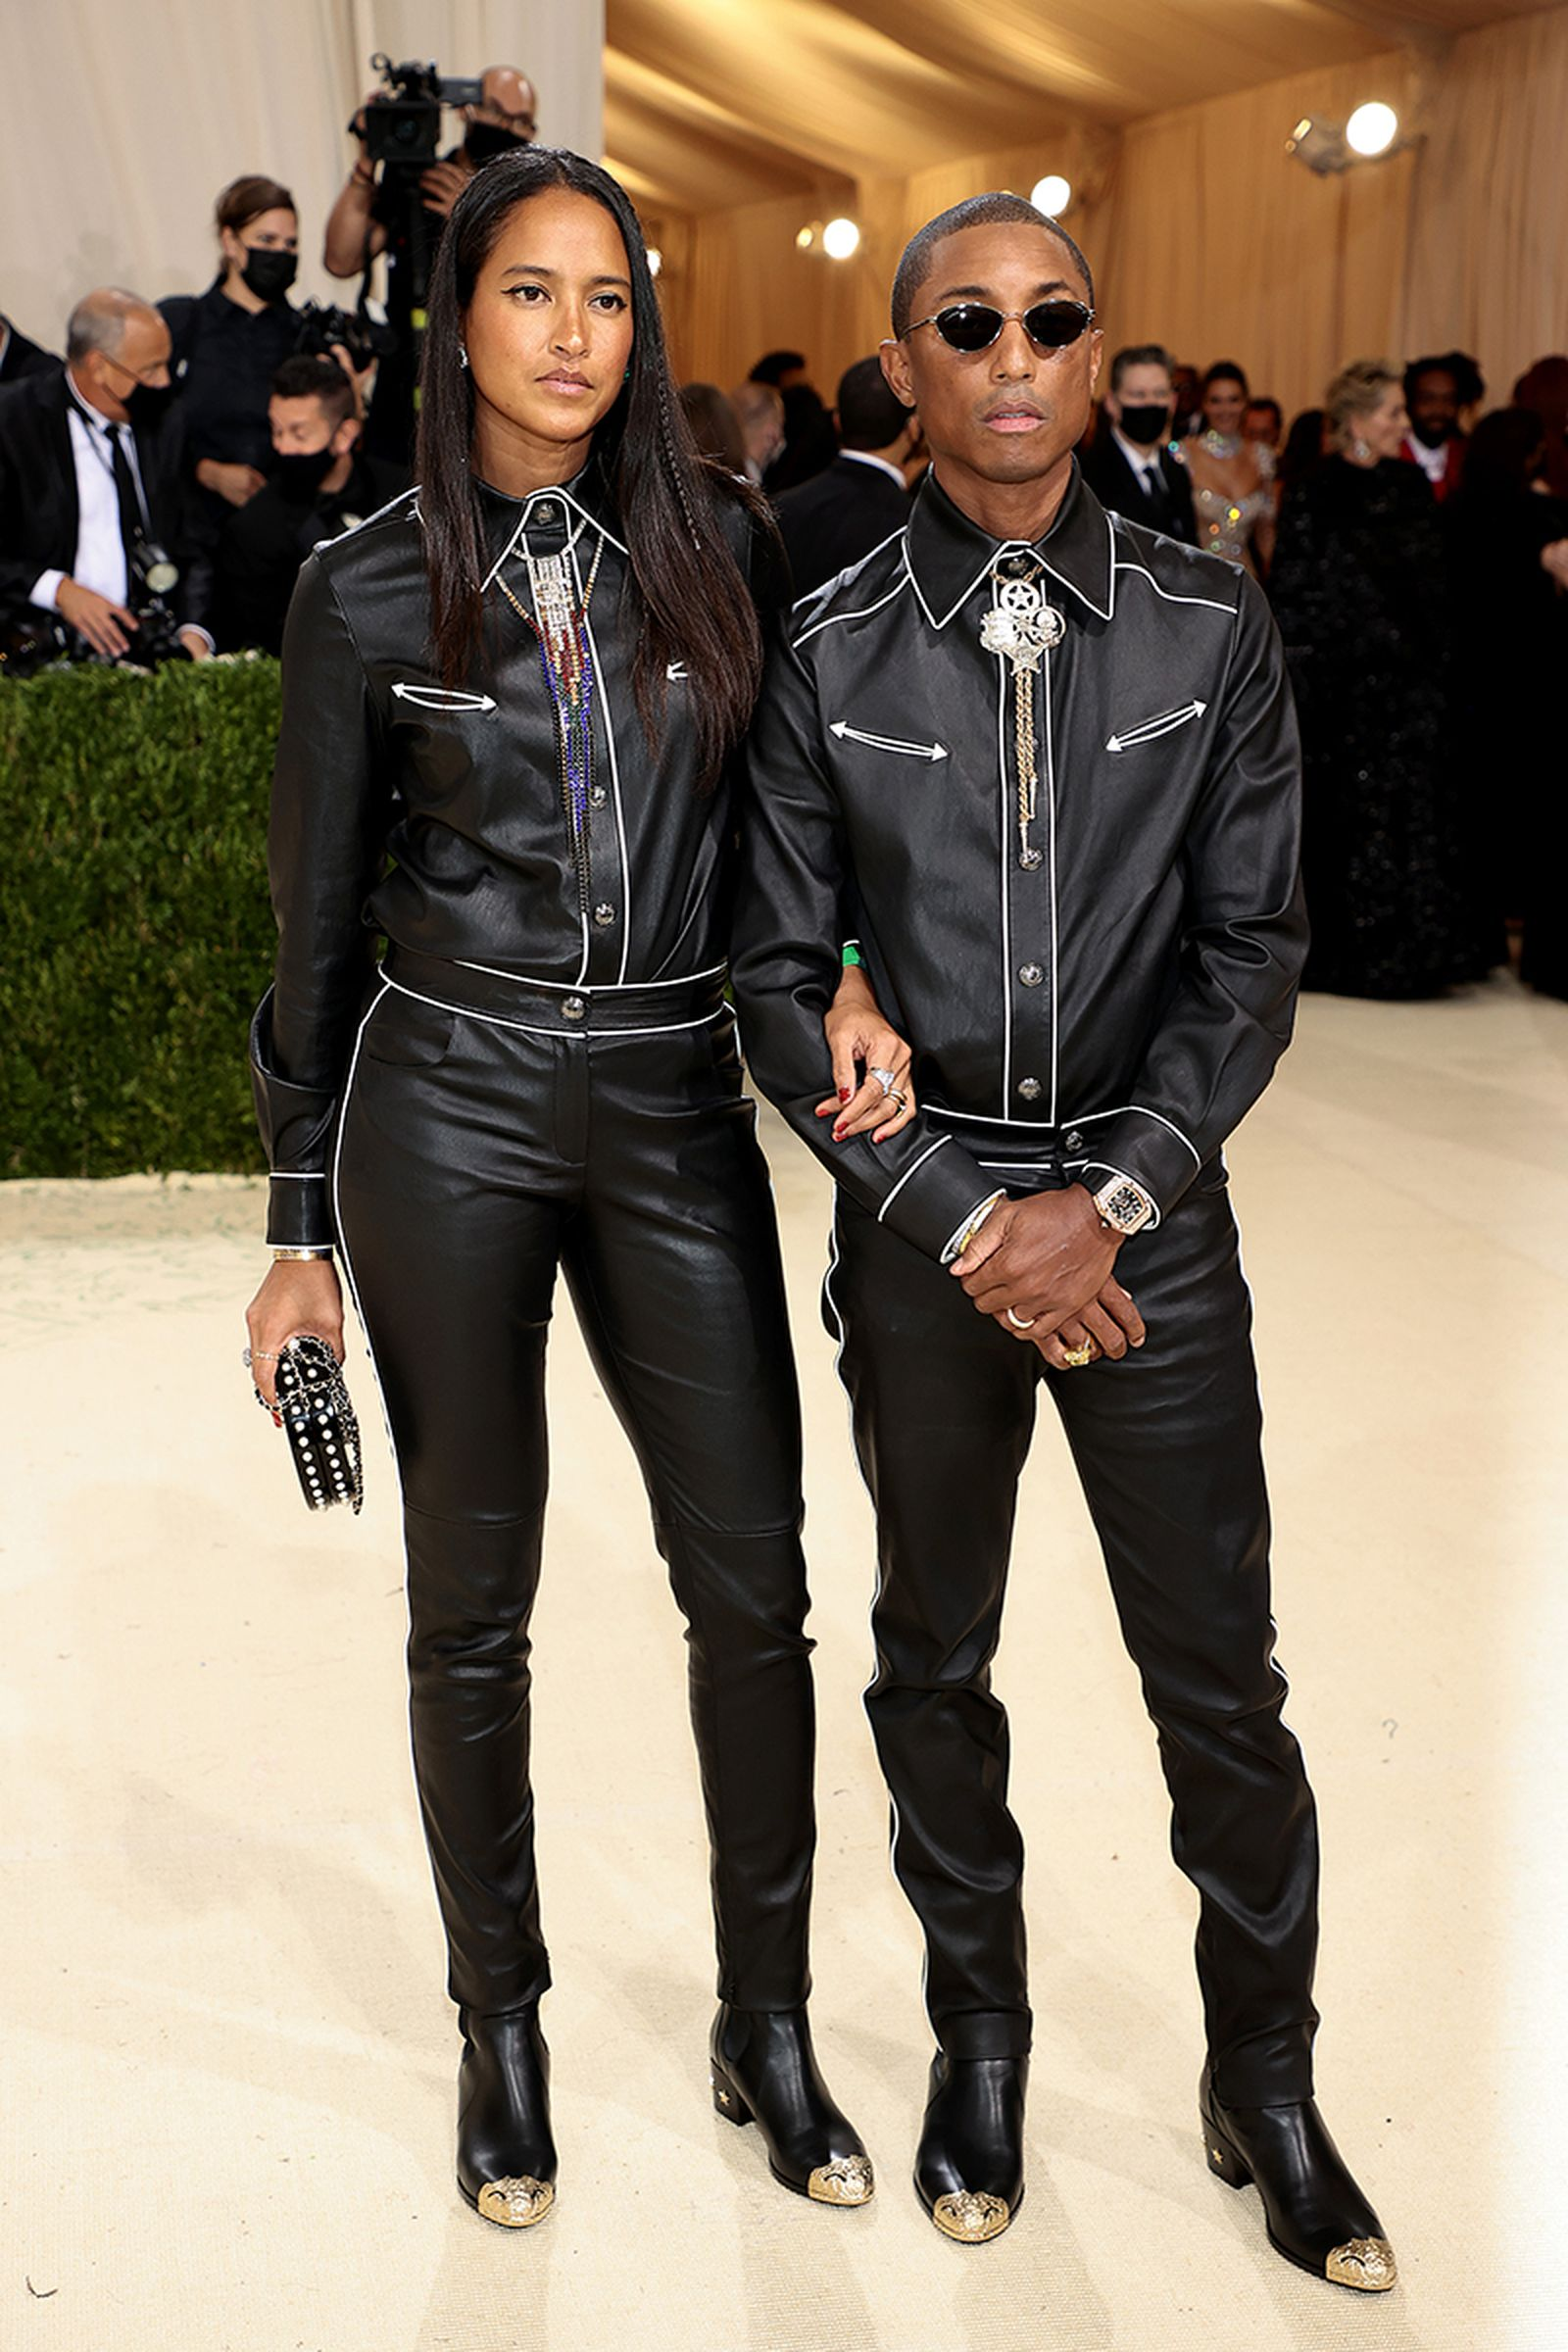 met gala 2021 celebrity style looks best outfits red carpet pharrell williams